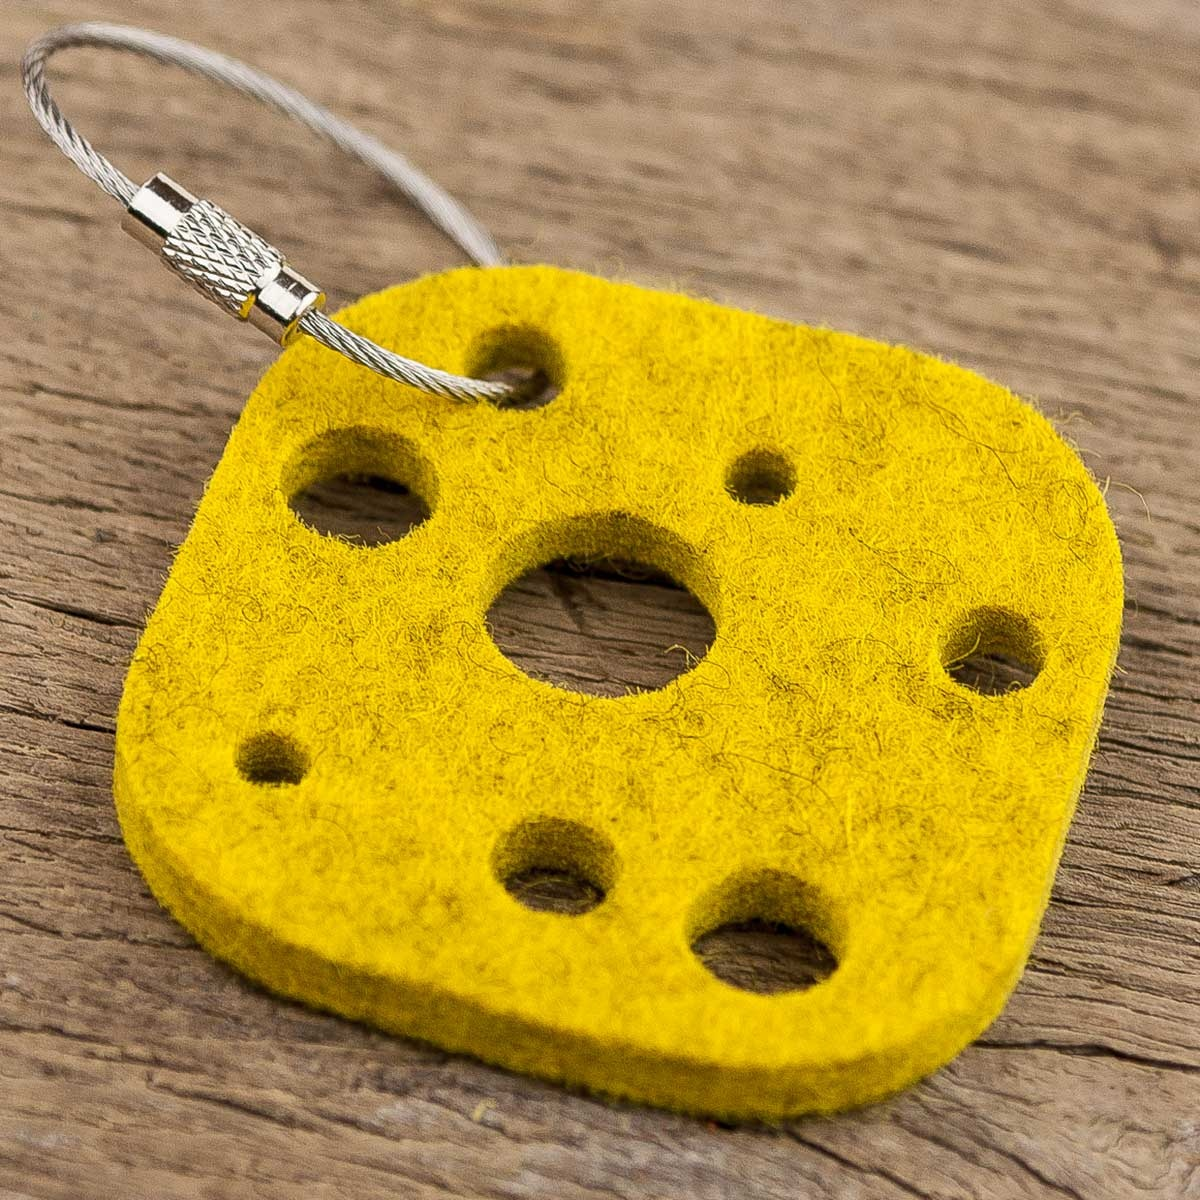 felt key chain cheese yellow – also as gift tag